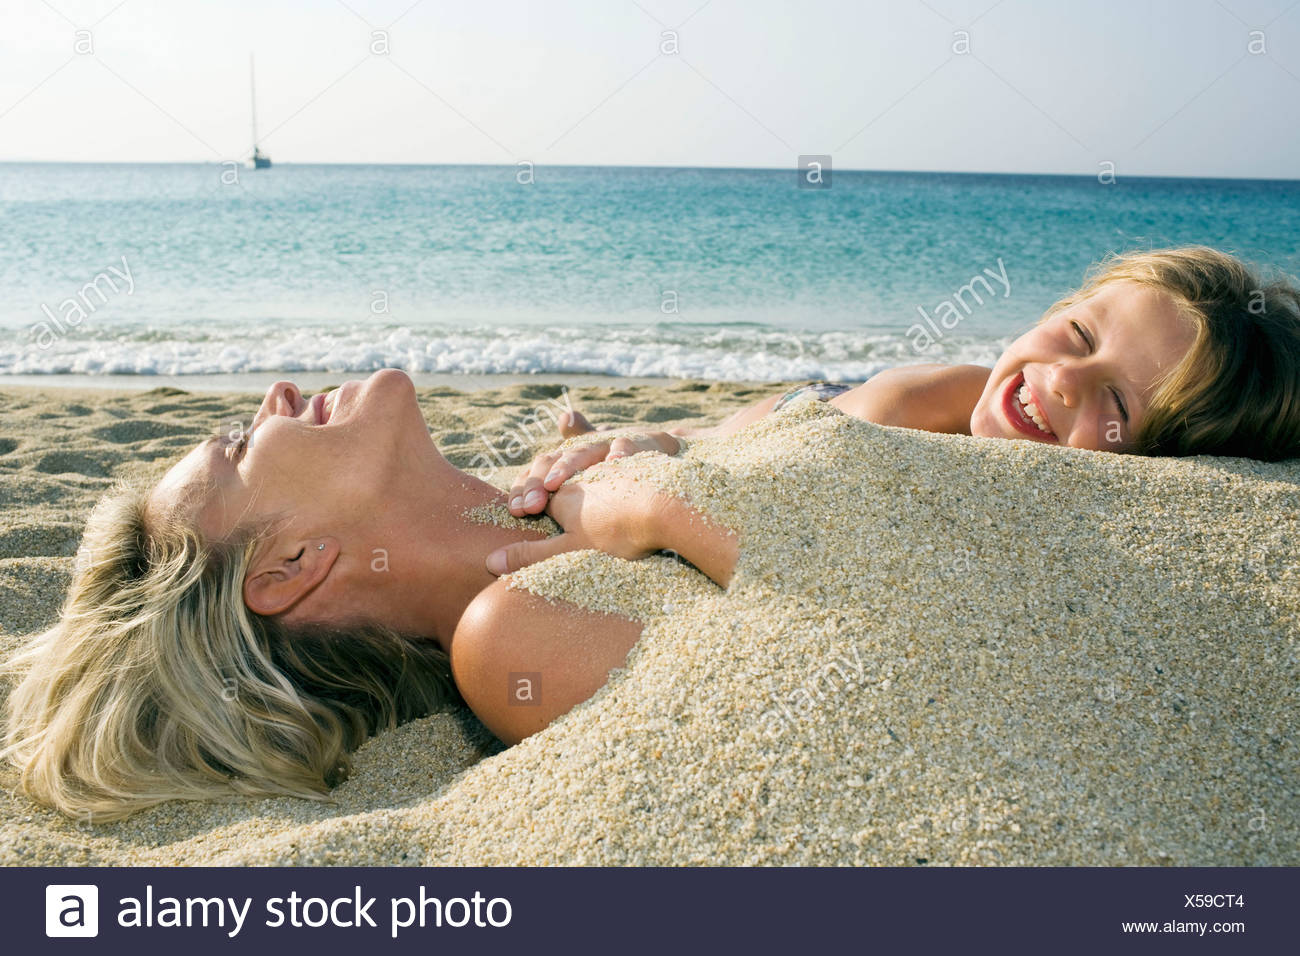 Woman buried in sand at the beach with young girl leaning on her and laughing. Stock Photo